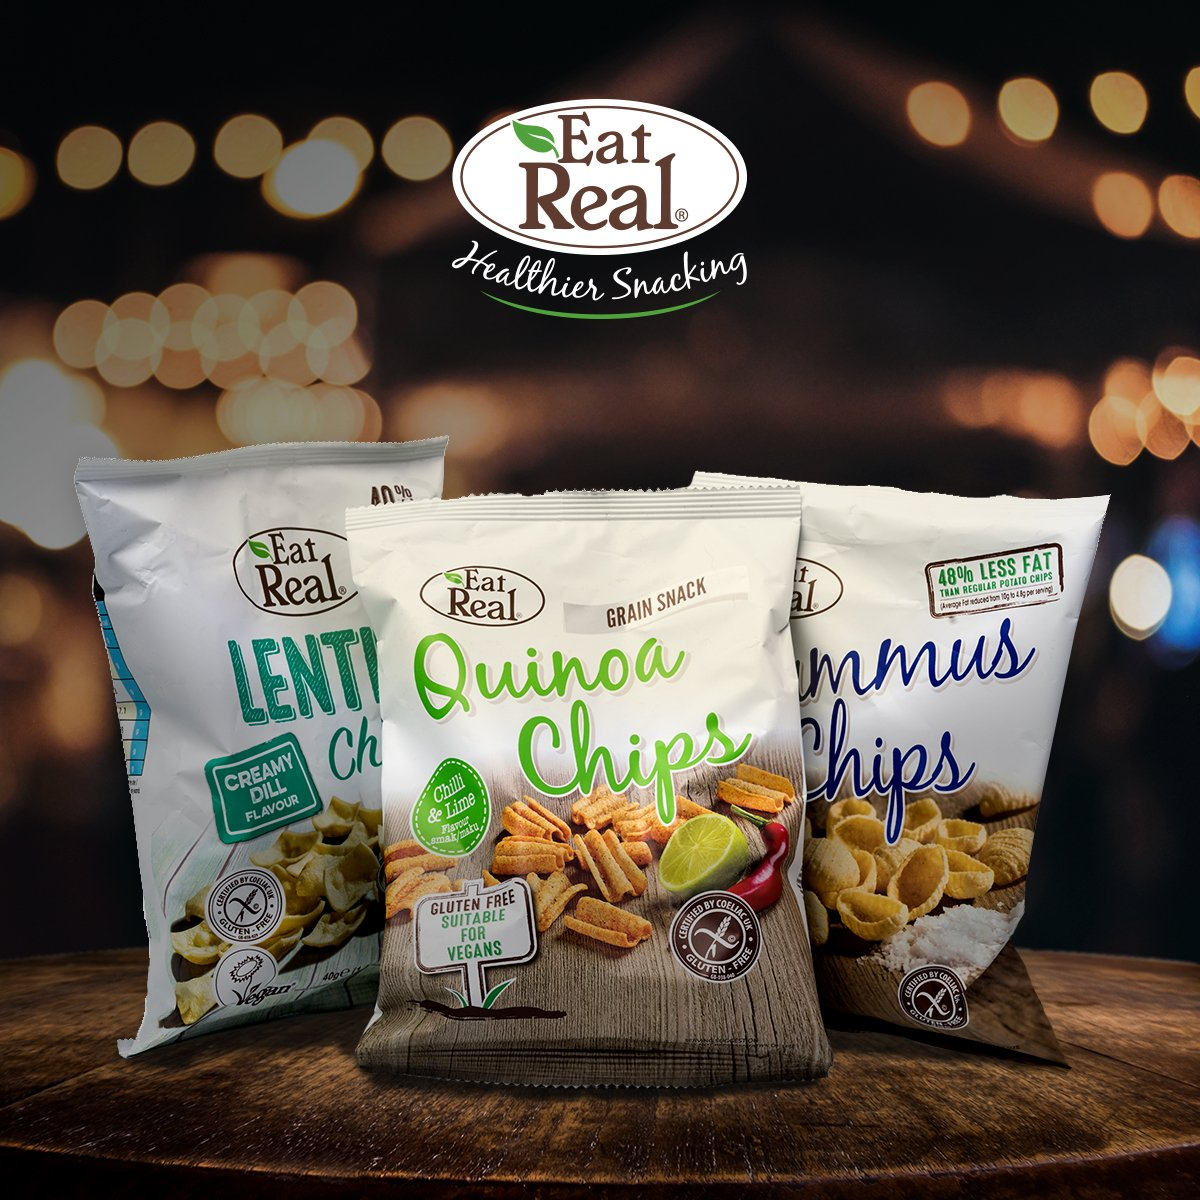 Eat Real malta product 02